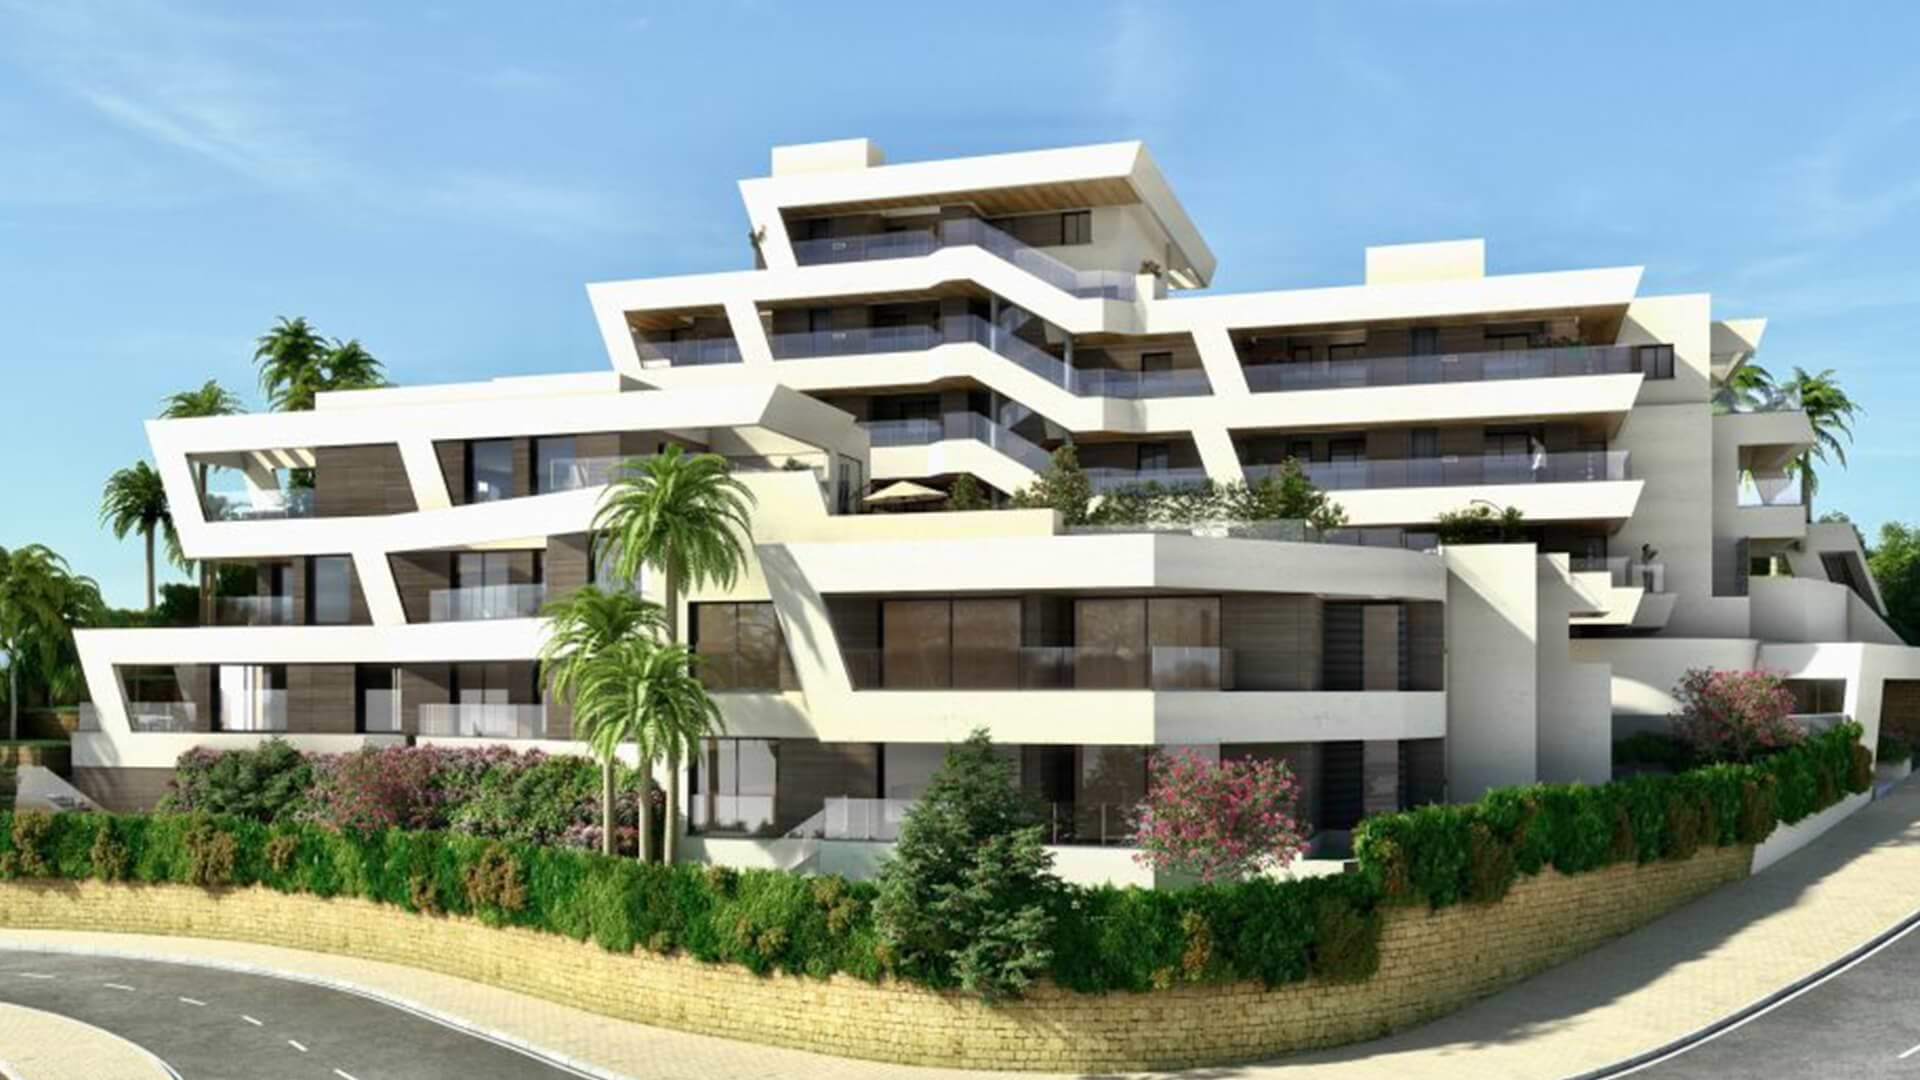 Orion Apartments en Venta en Marbella